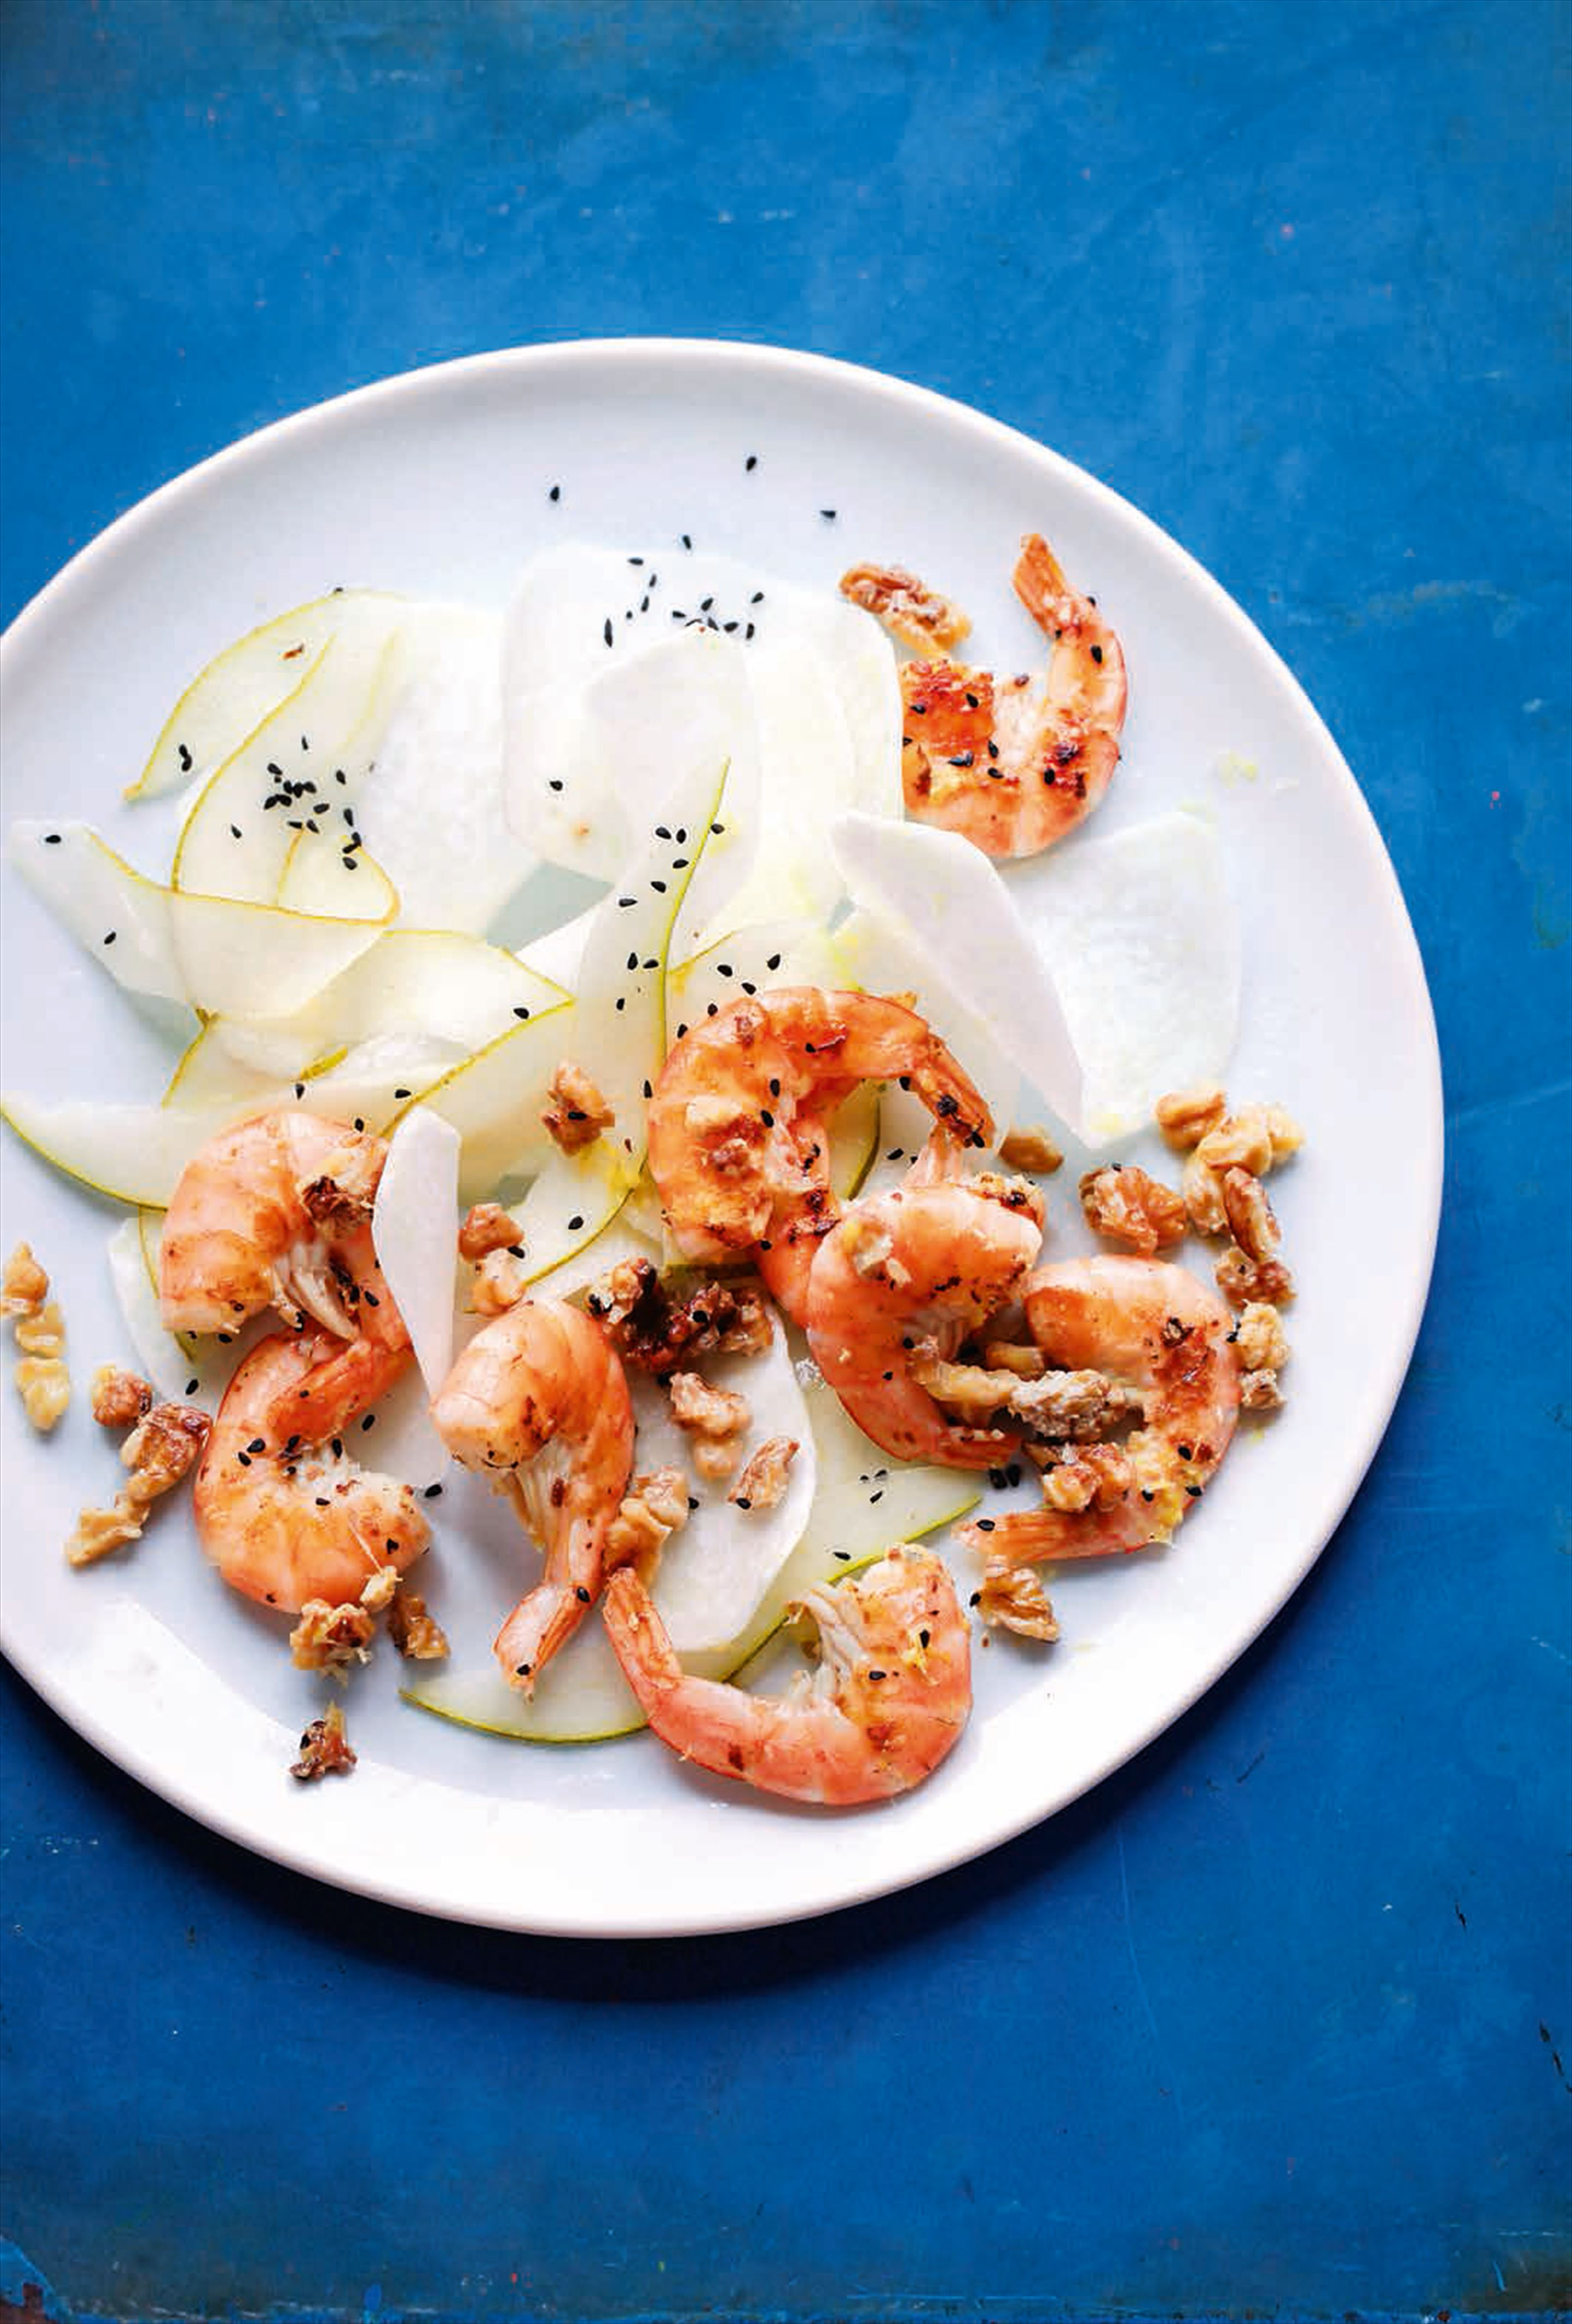 King prawn, kohlrabi & pear salad